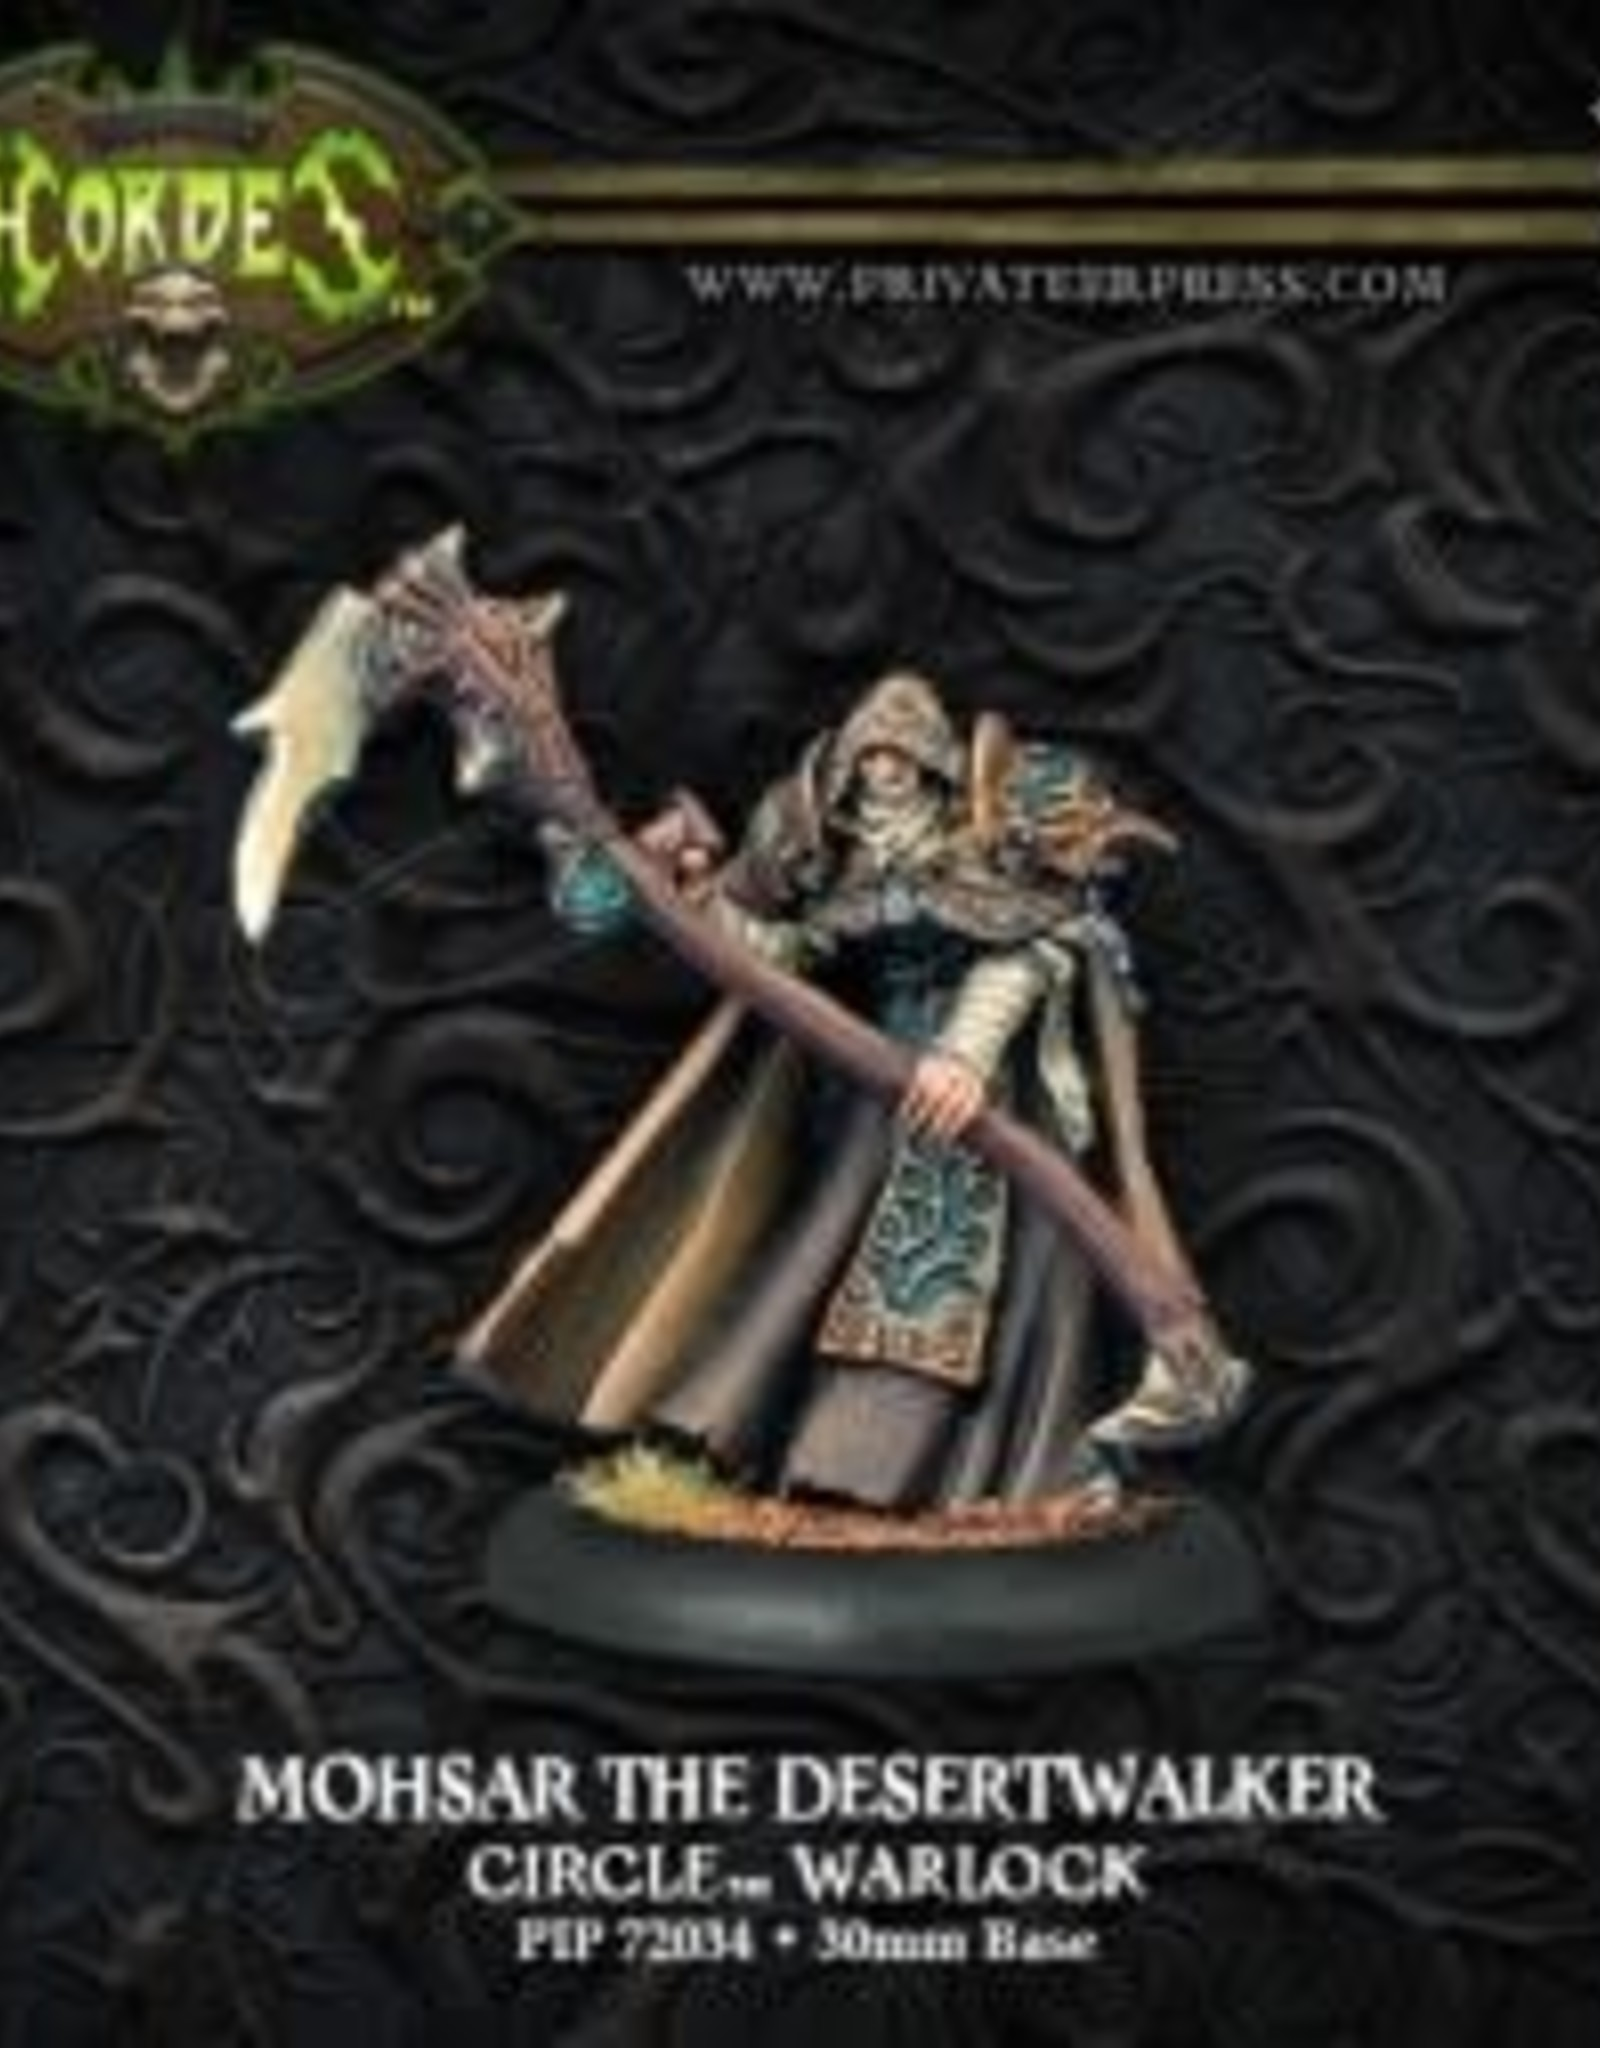 Hordes Circle - Mohsar the Desertwalker